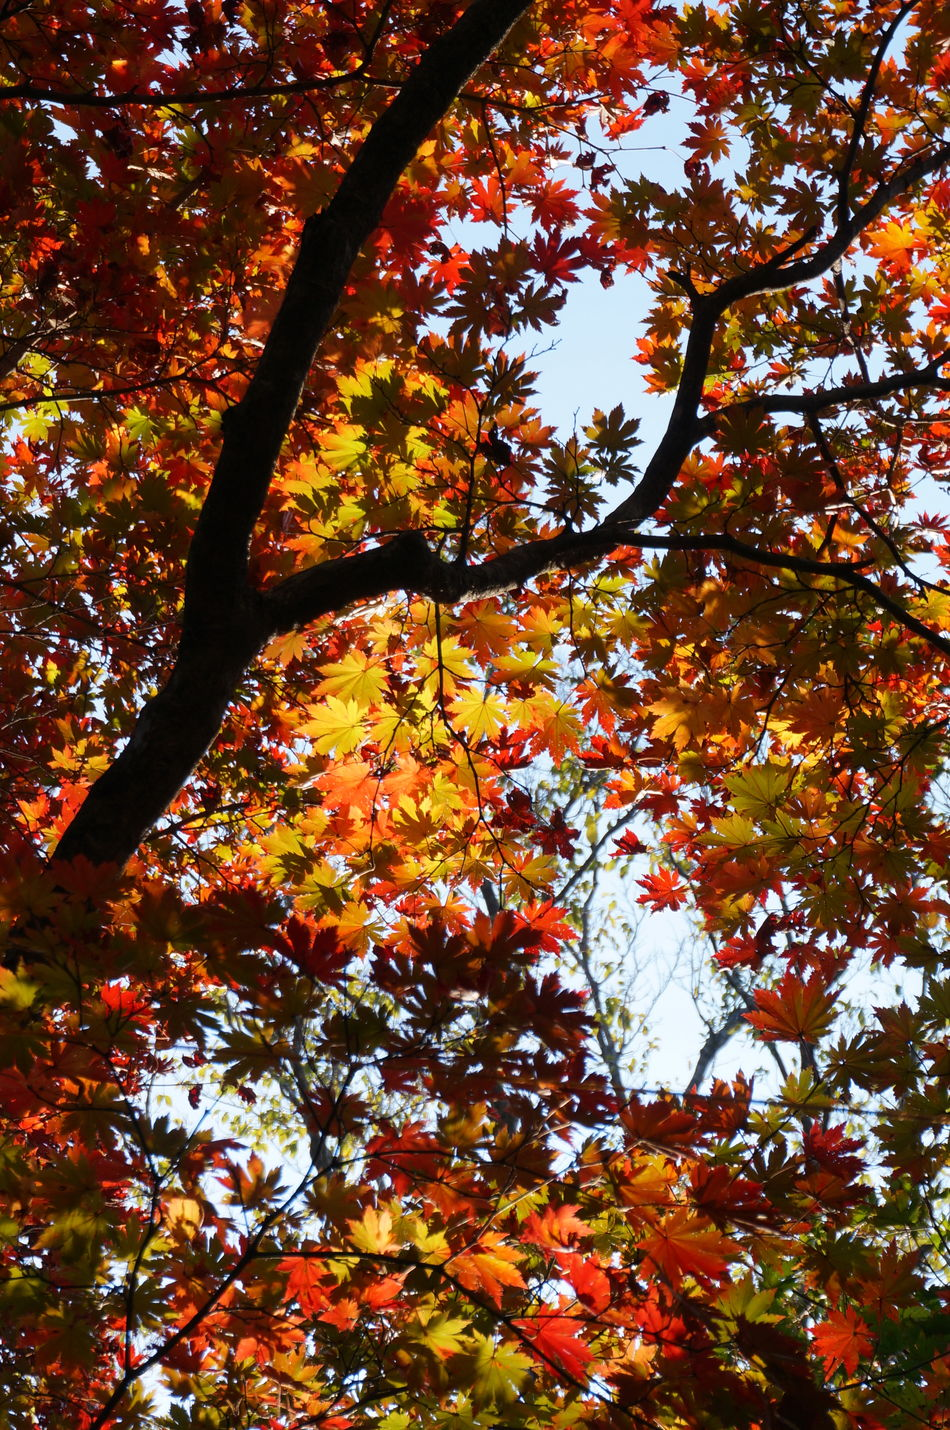 2013 Autumn Colors Hallasan Hallasan Mountain Jeju JEJU ISLAND  Leaf Leaves Maple Maple Leaf Nature Outdoors カンナ山 チェジュ島 ハルラ山 済州島 紅葉 韓国 단풍 한라산